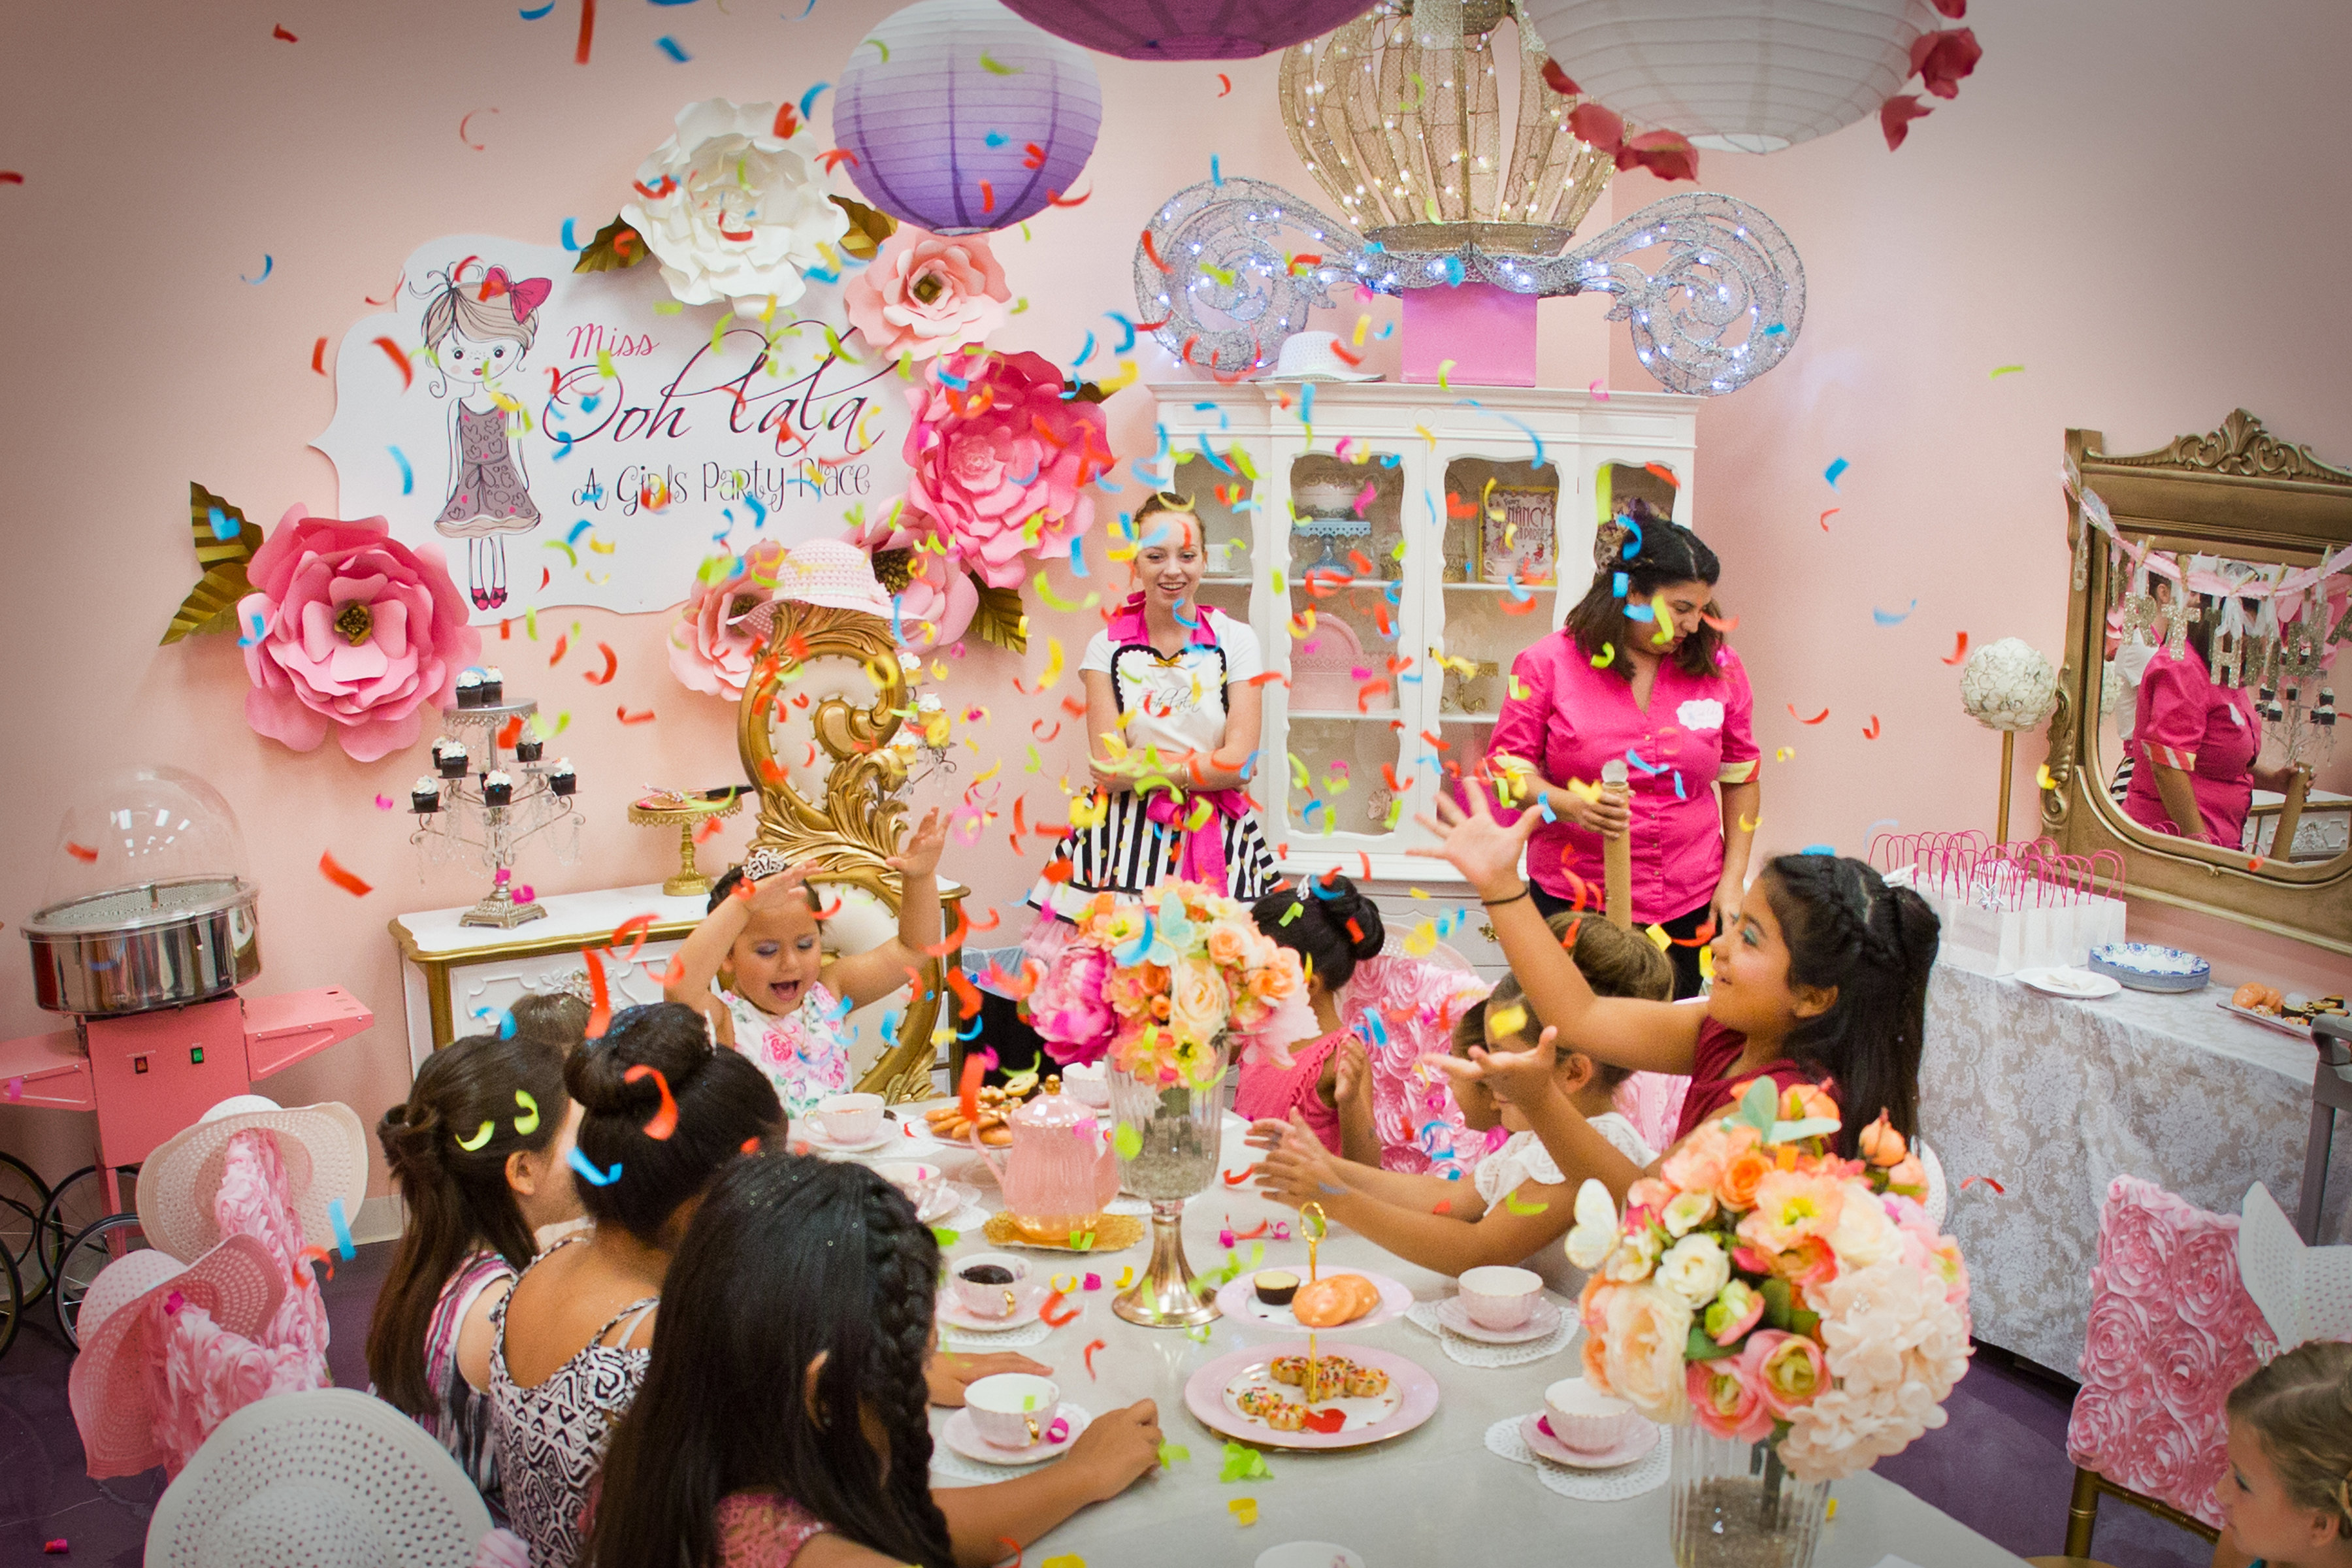 Miss Ooh Lala A Girls Party PlacePrincess PartyTea PartySpa